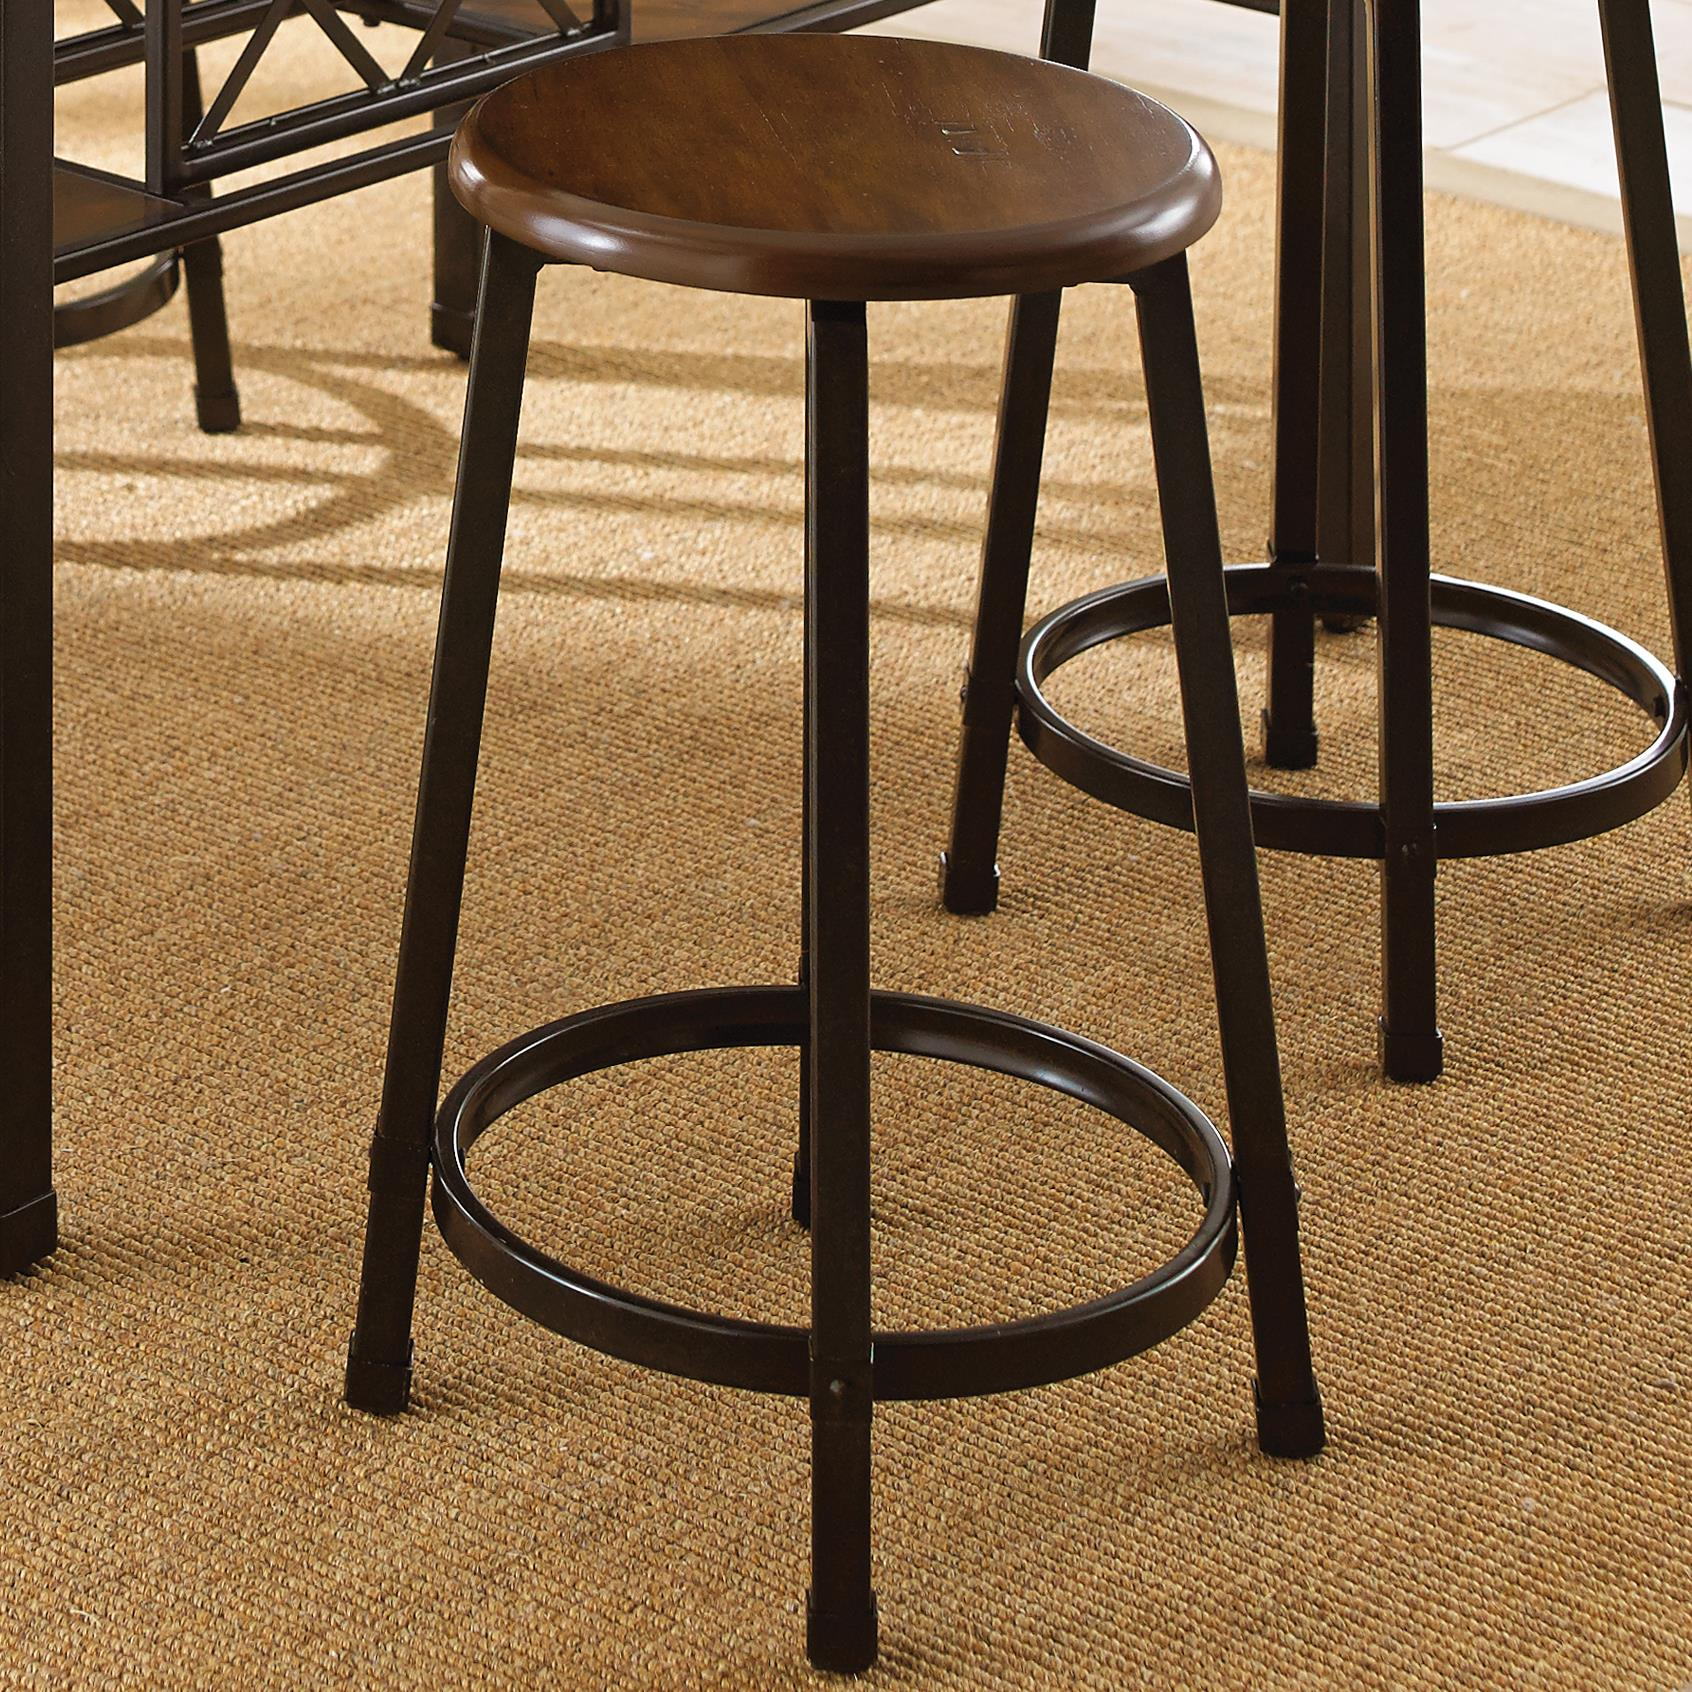 Swell Rebecca Round Counter Stool With Metal Legs By Steve Silver At Wilsons Furniture Gmtry Best Dining Table And Chair Ideas Images Gmtryco